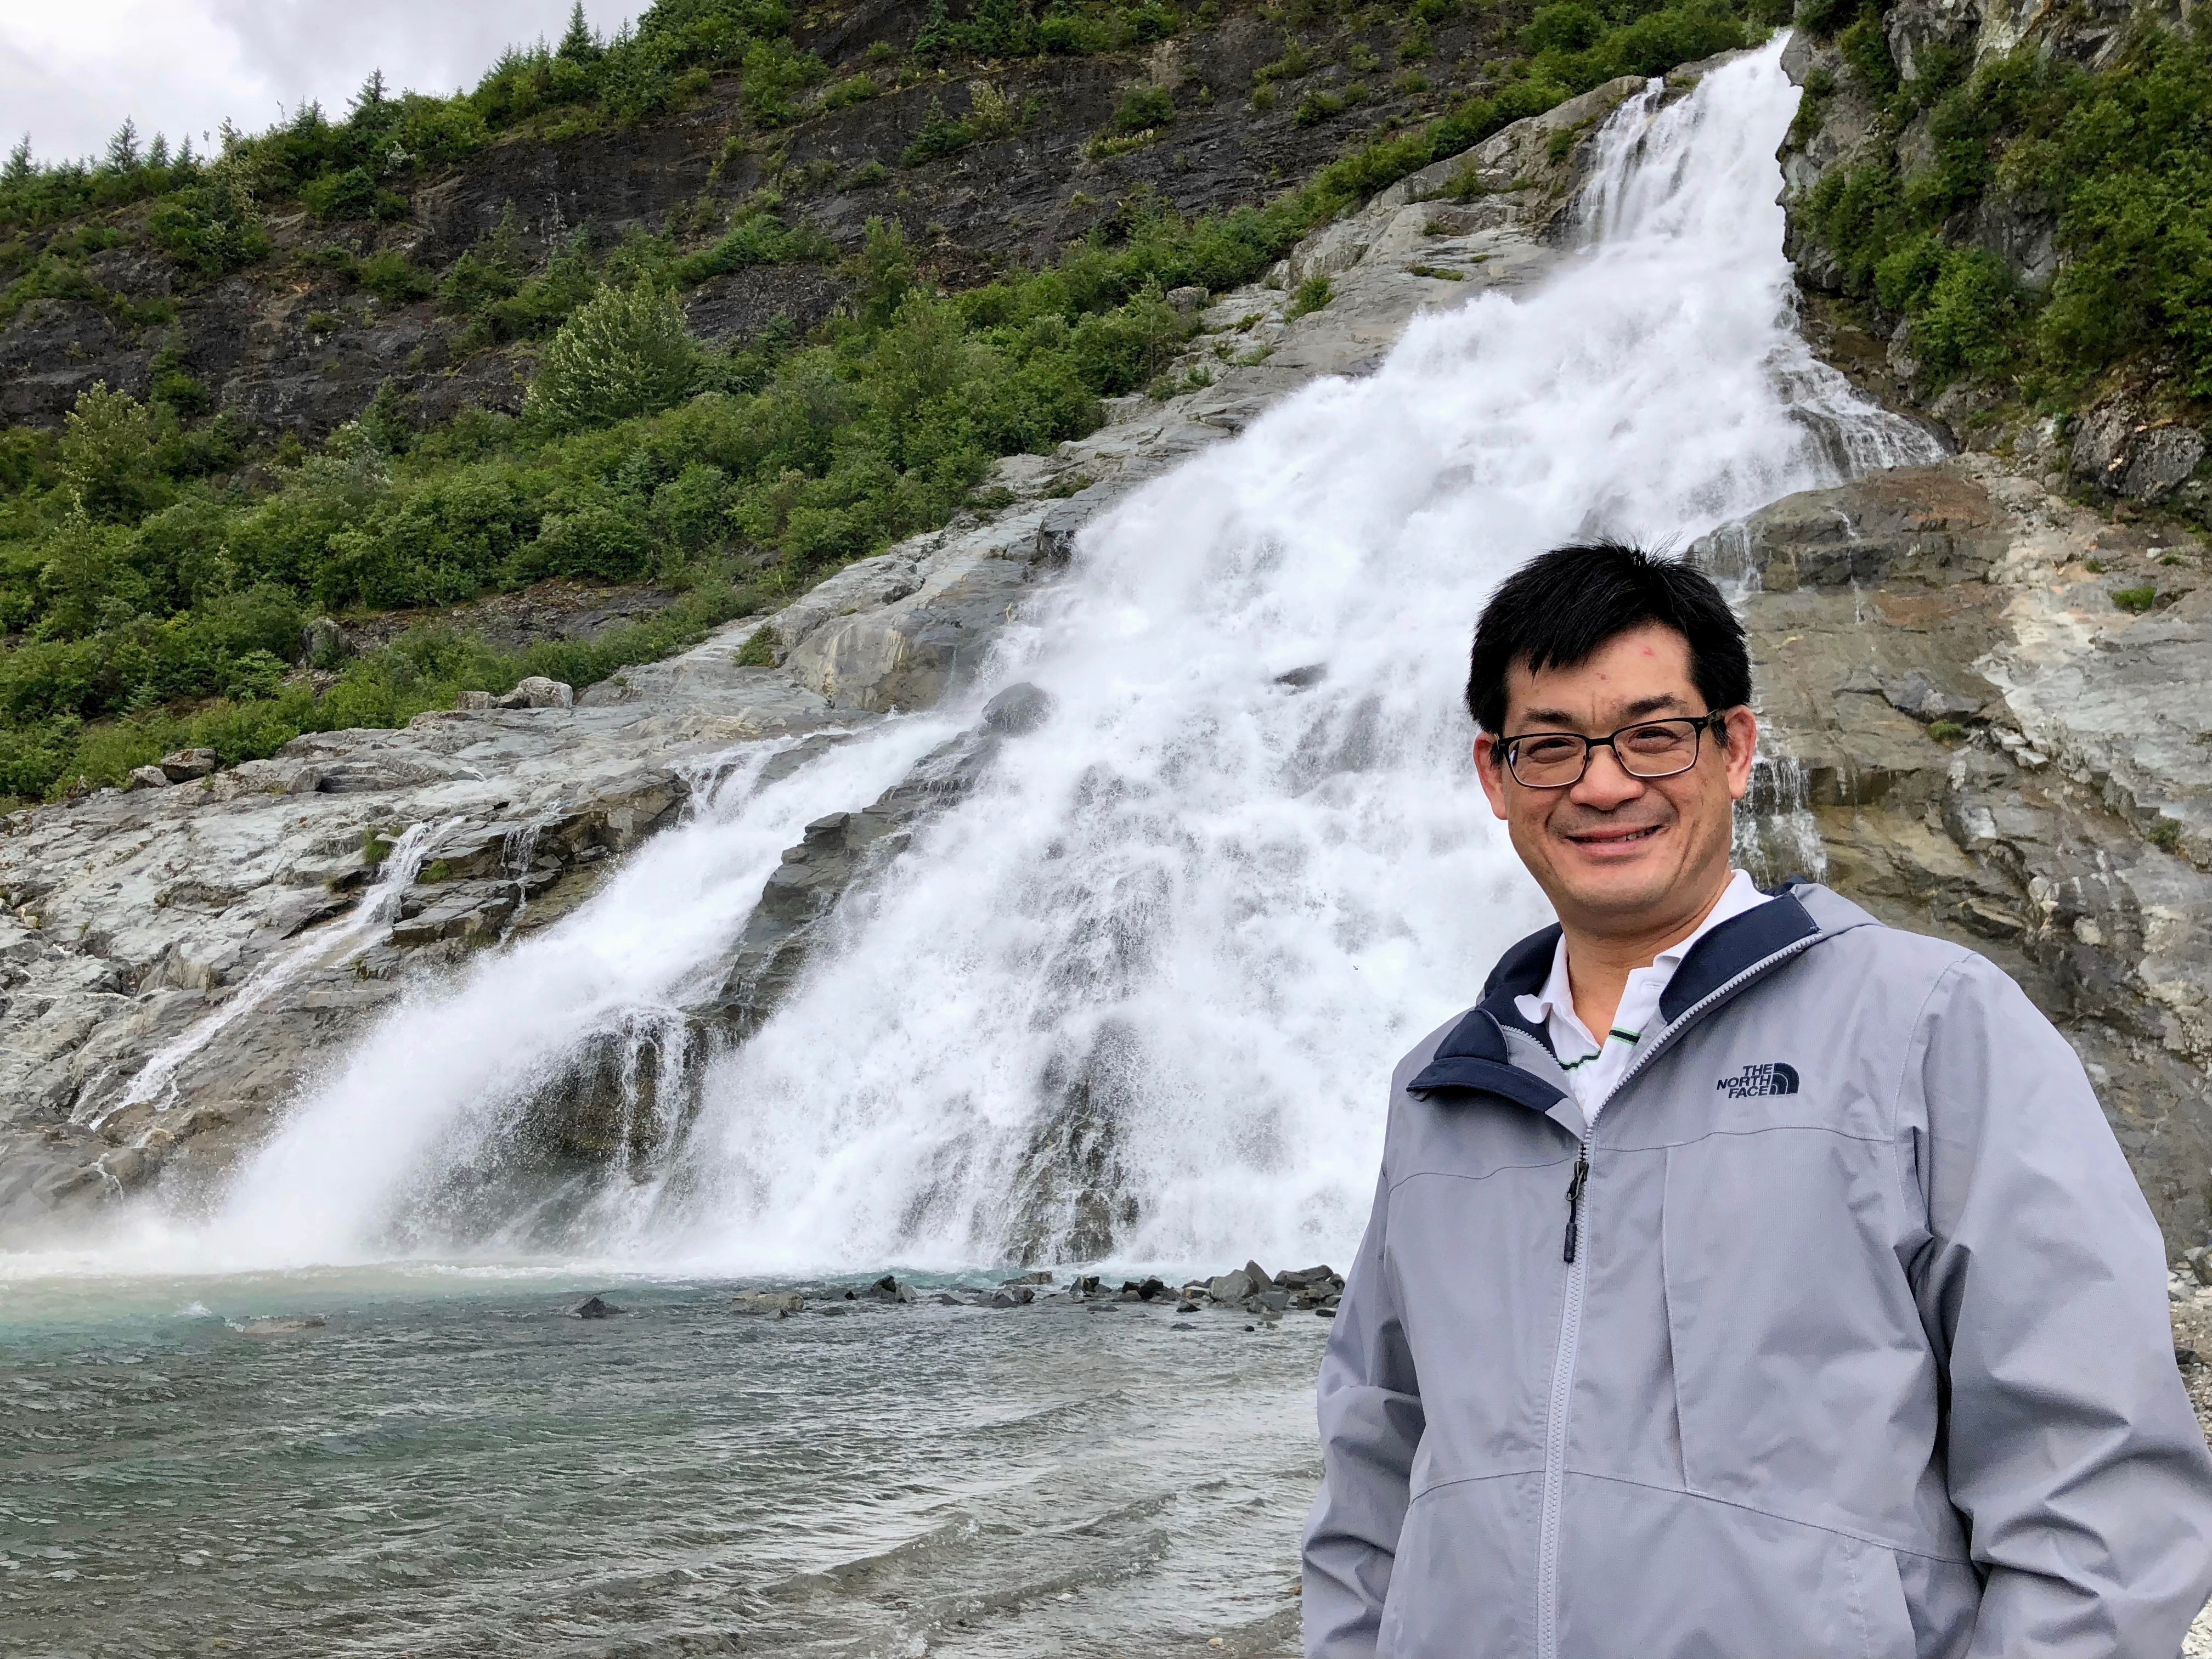 An Asian man in his thirties wearing glasses and a gray parka standing in front of a waterfall.